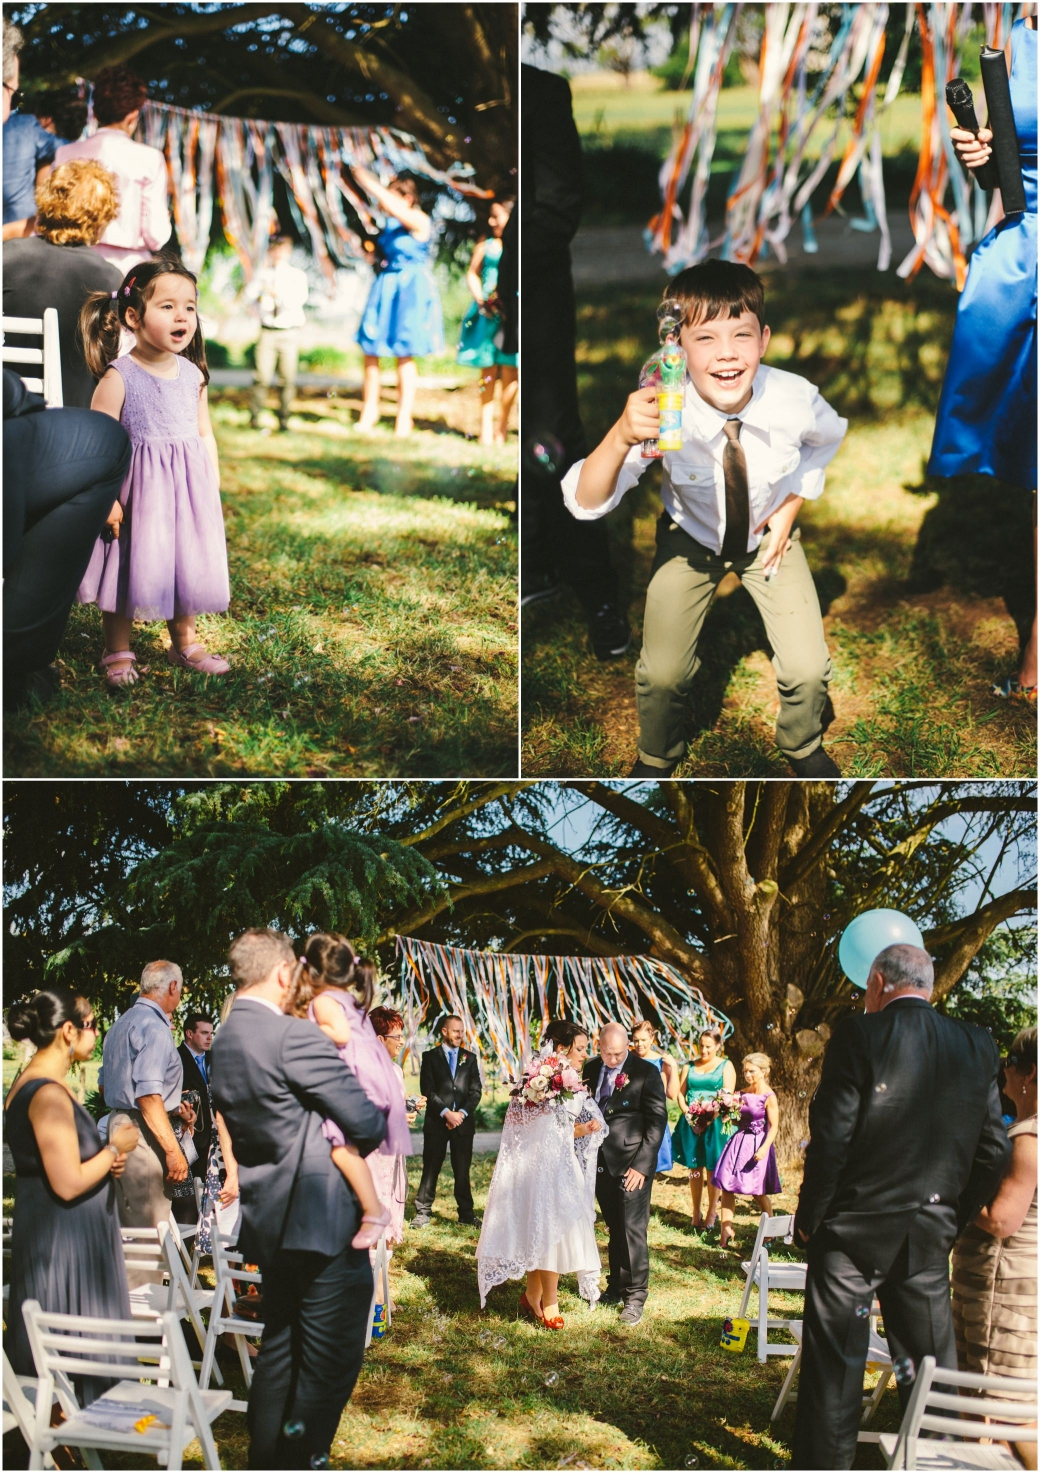 Melbourne wedding photographer aghadoe estate country victorian wedding DIY wedding pomp and splendour flowers hyggelig photography melbourne wedding photographer39